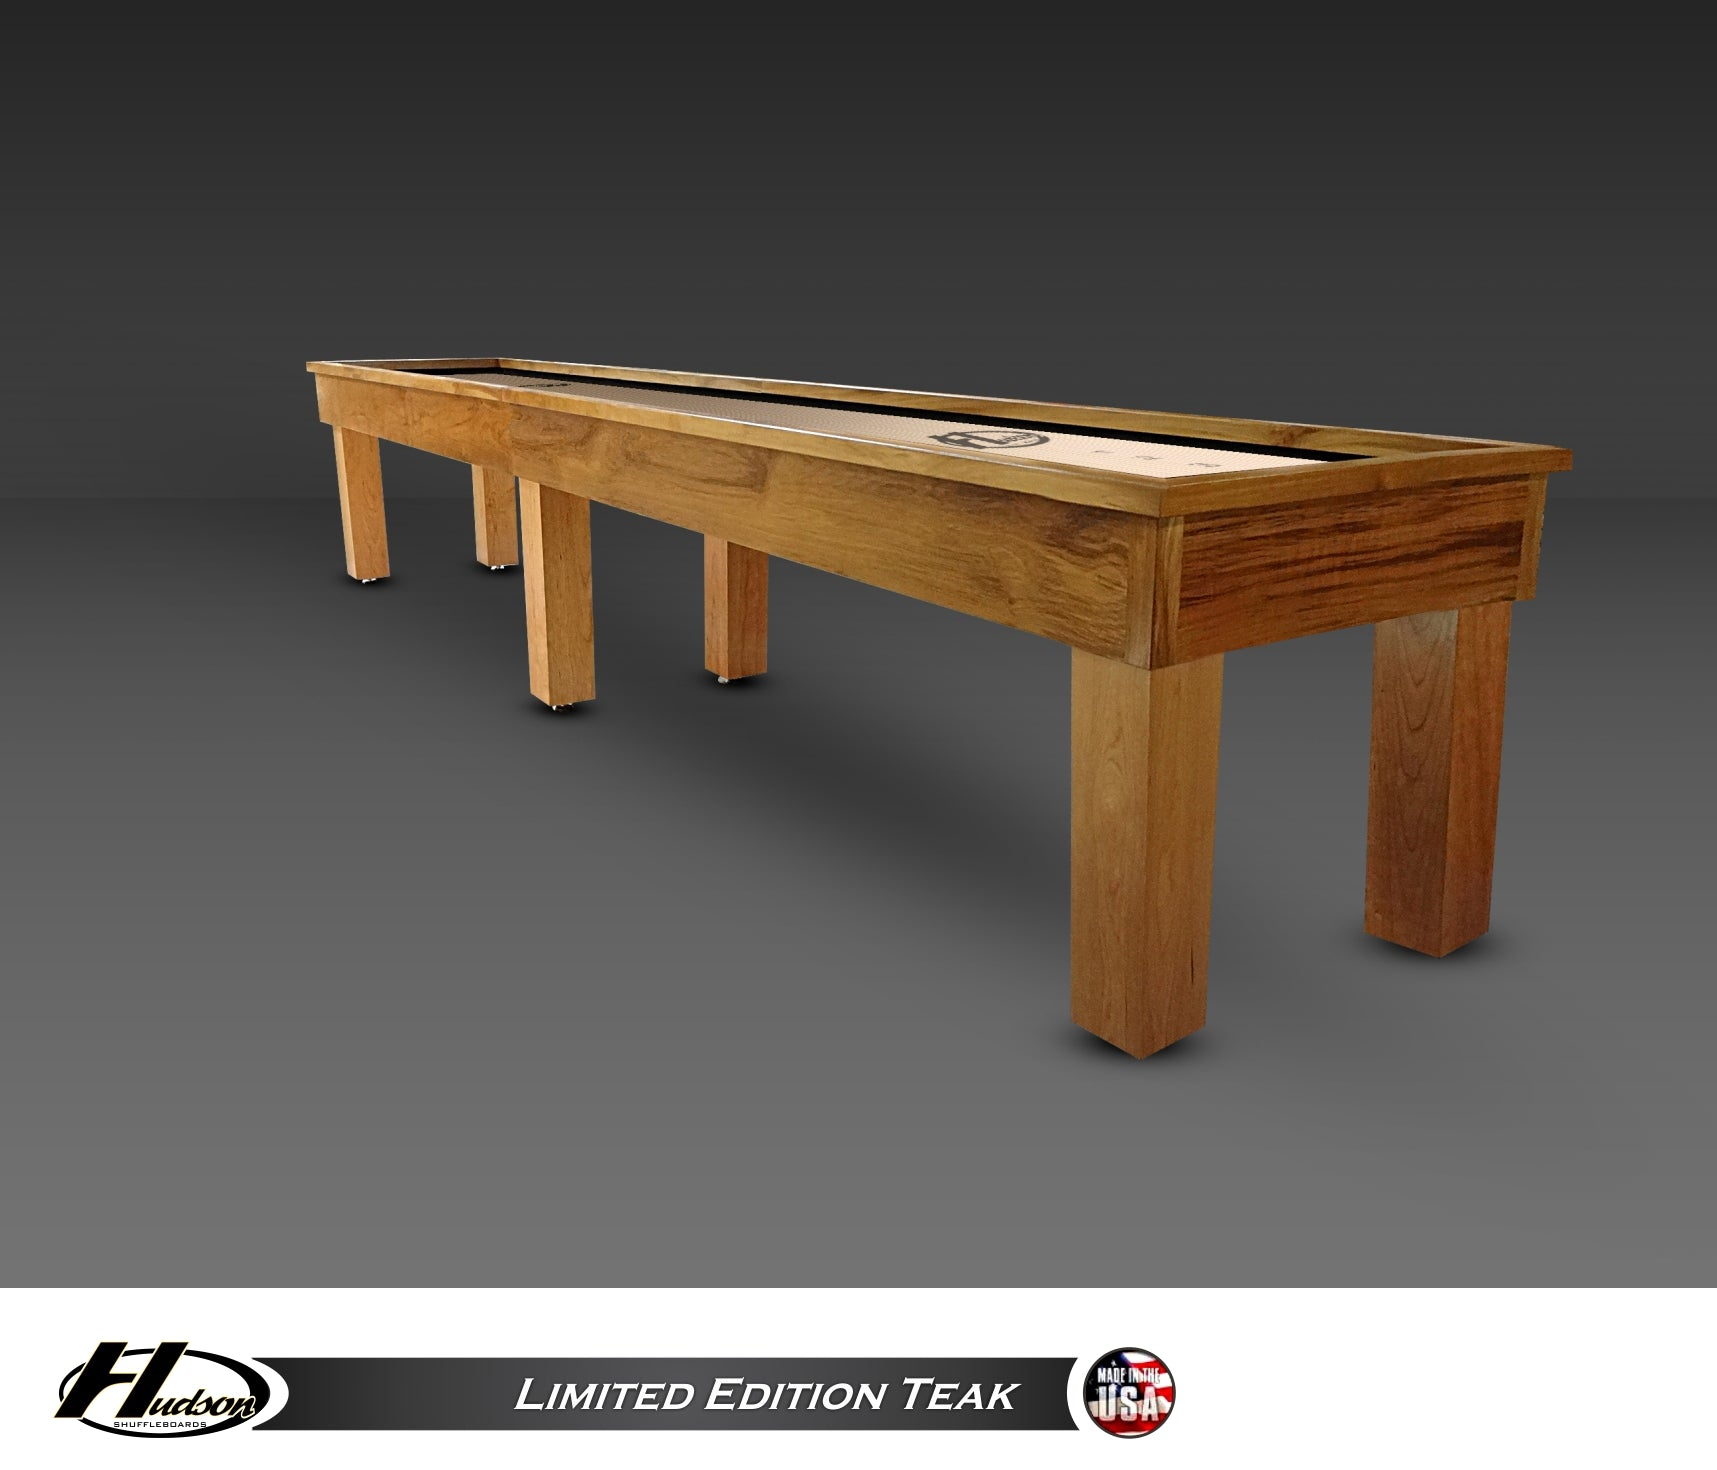 Teak Shuffleboard Table